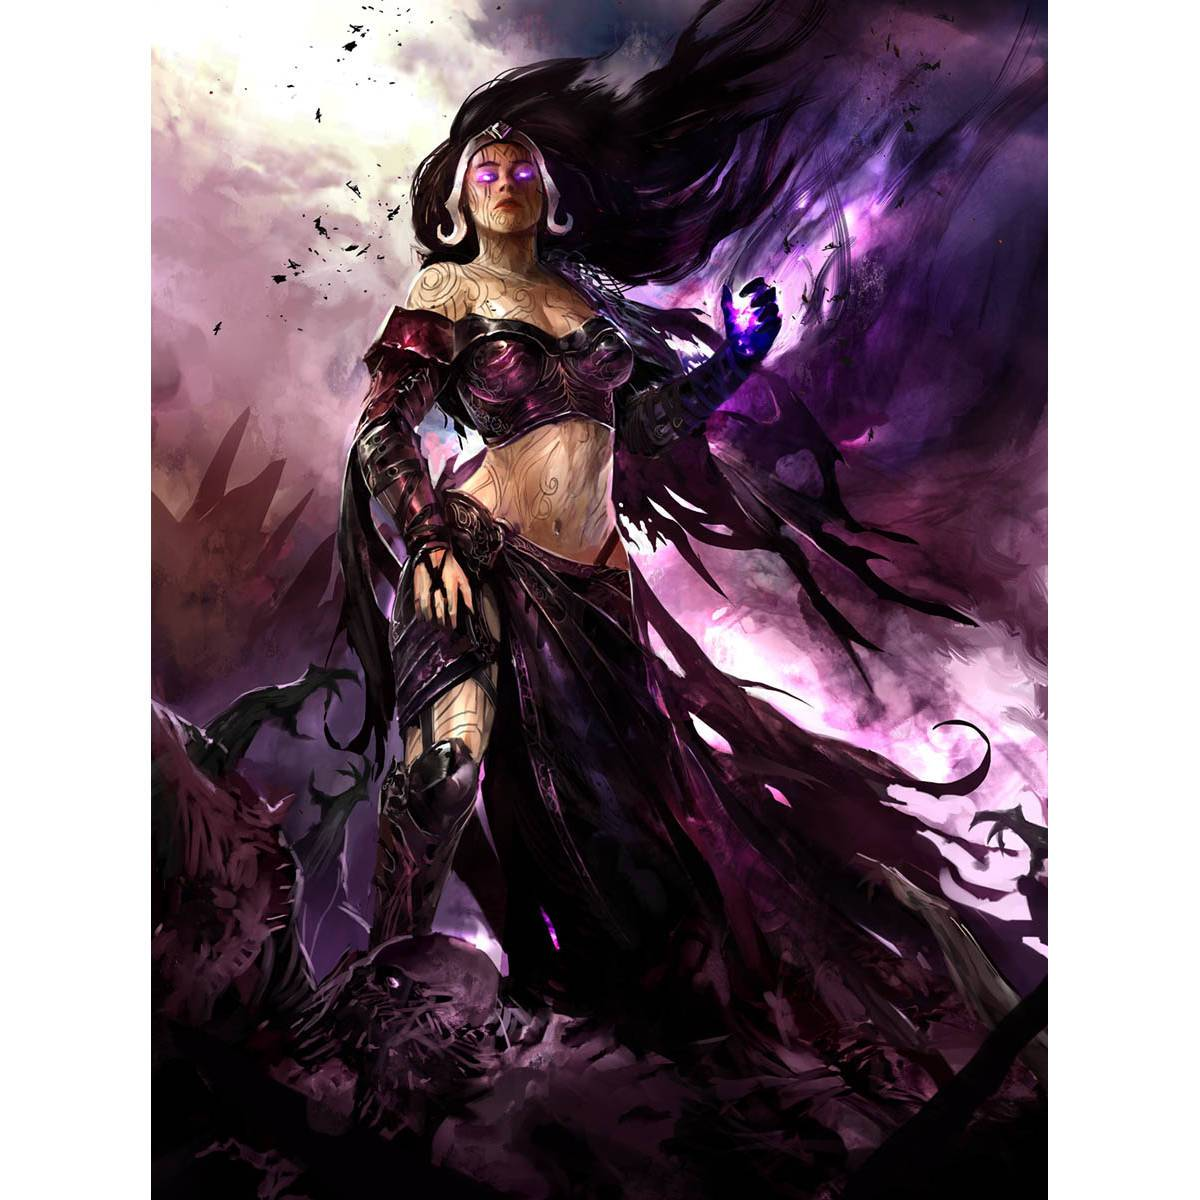 Liliana Vess Print - Print - Original Magic Art - Accessories for Magic the Gathering and other card games